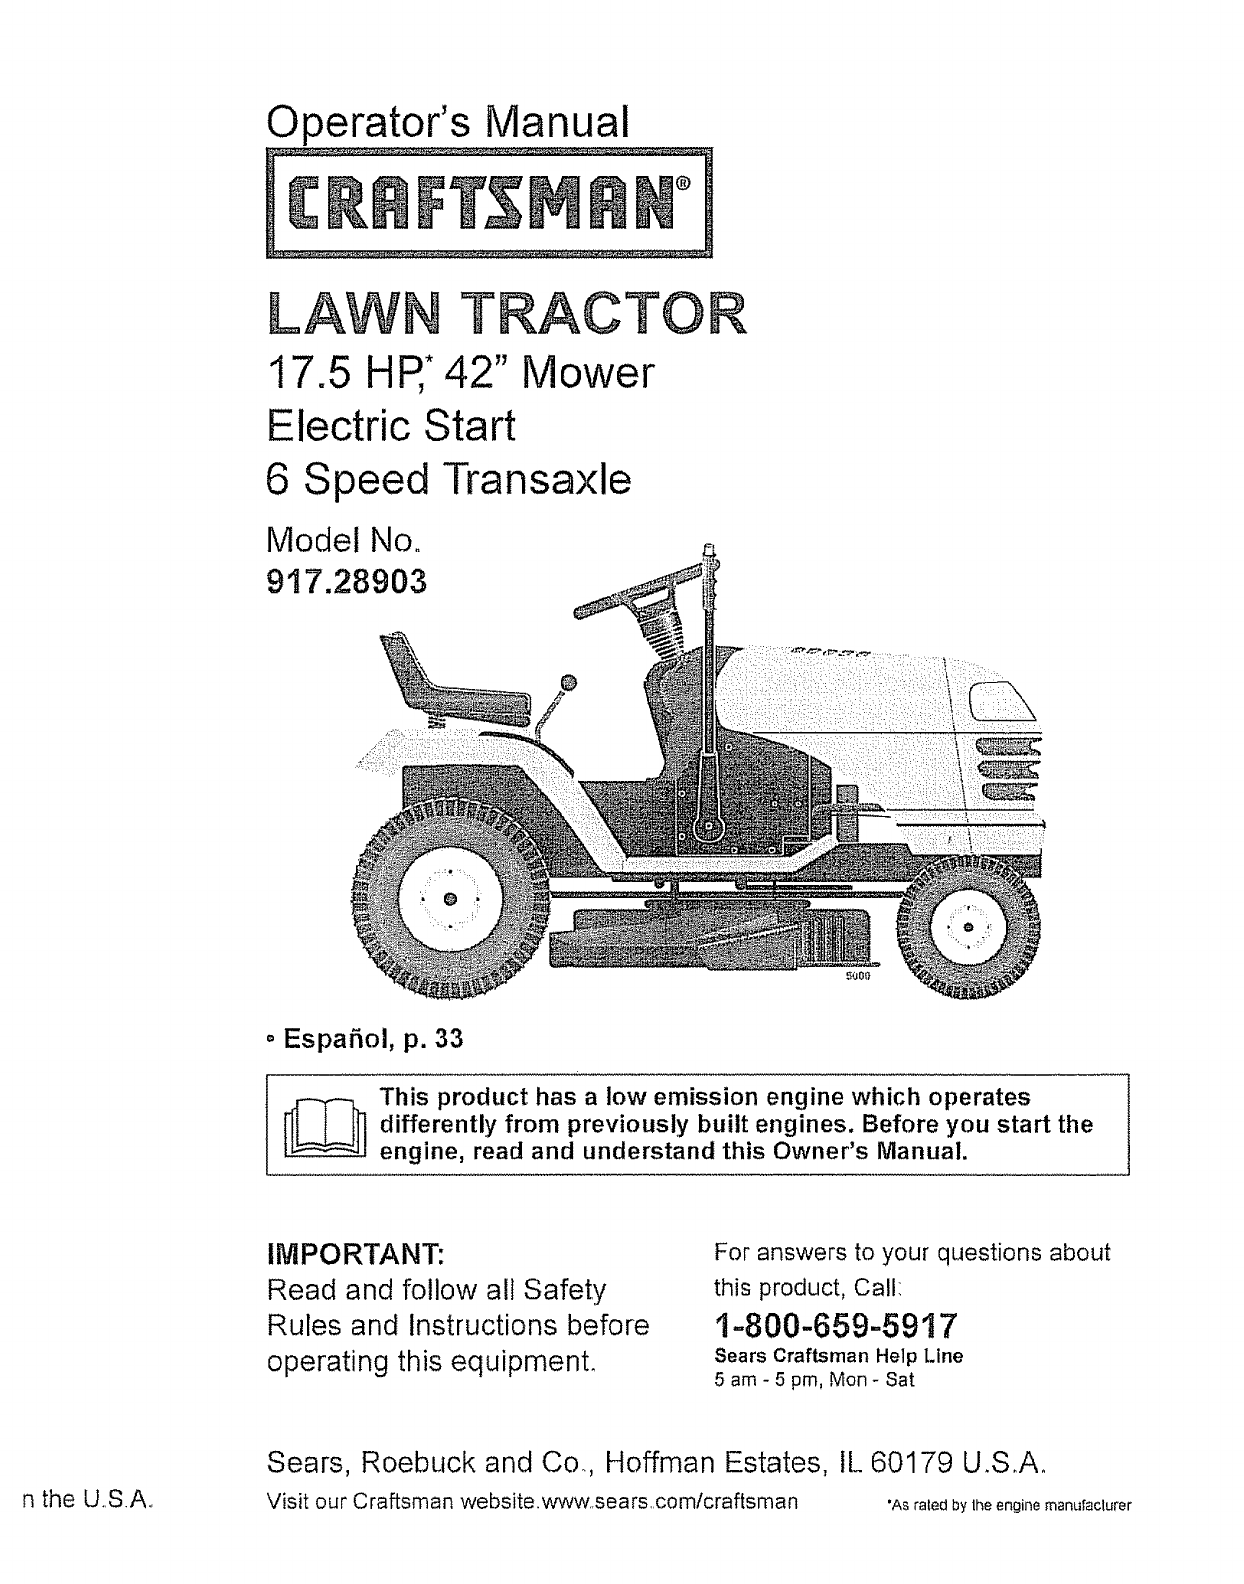 cb1648fd ba11 4ad4 80be 7014e24be2a7 bg1 craftsman riding lawn mower parts model 502254280 sears wiring diagram for craftsman lt1000 at bayanpartner.co